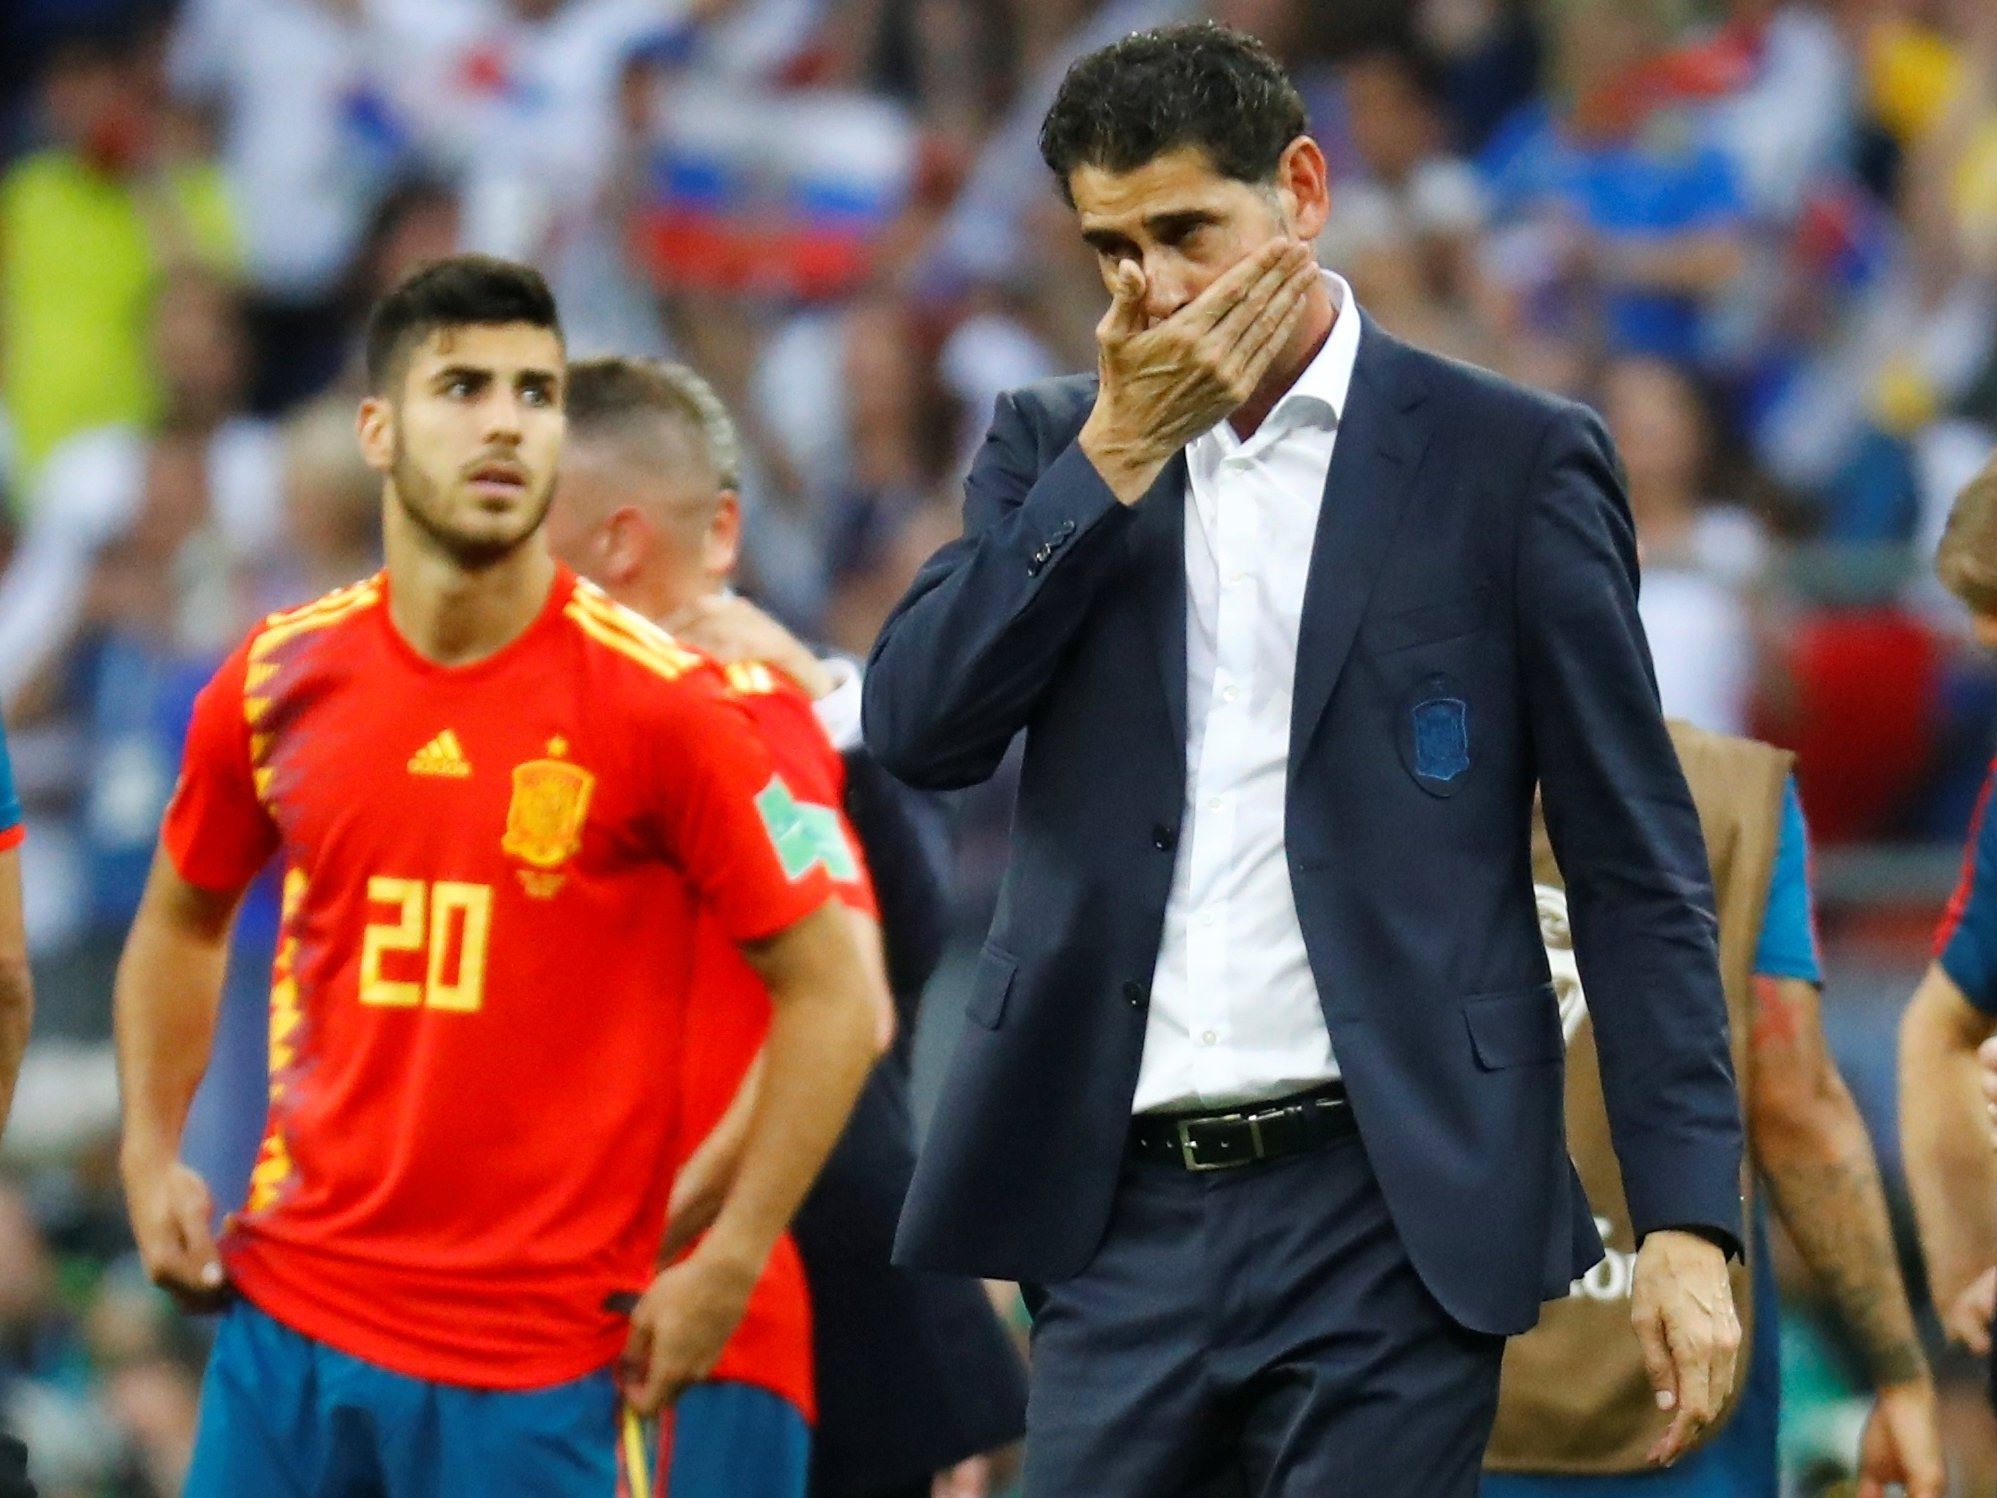 Hierro cuts ties with Spanish federation after World Cup exit